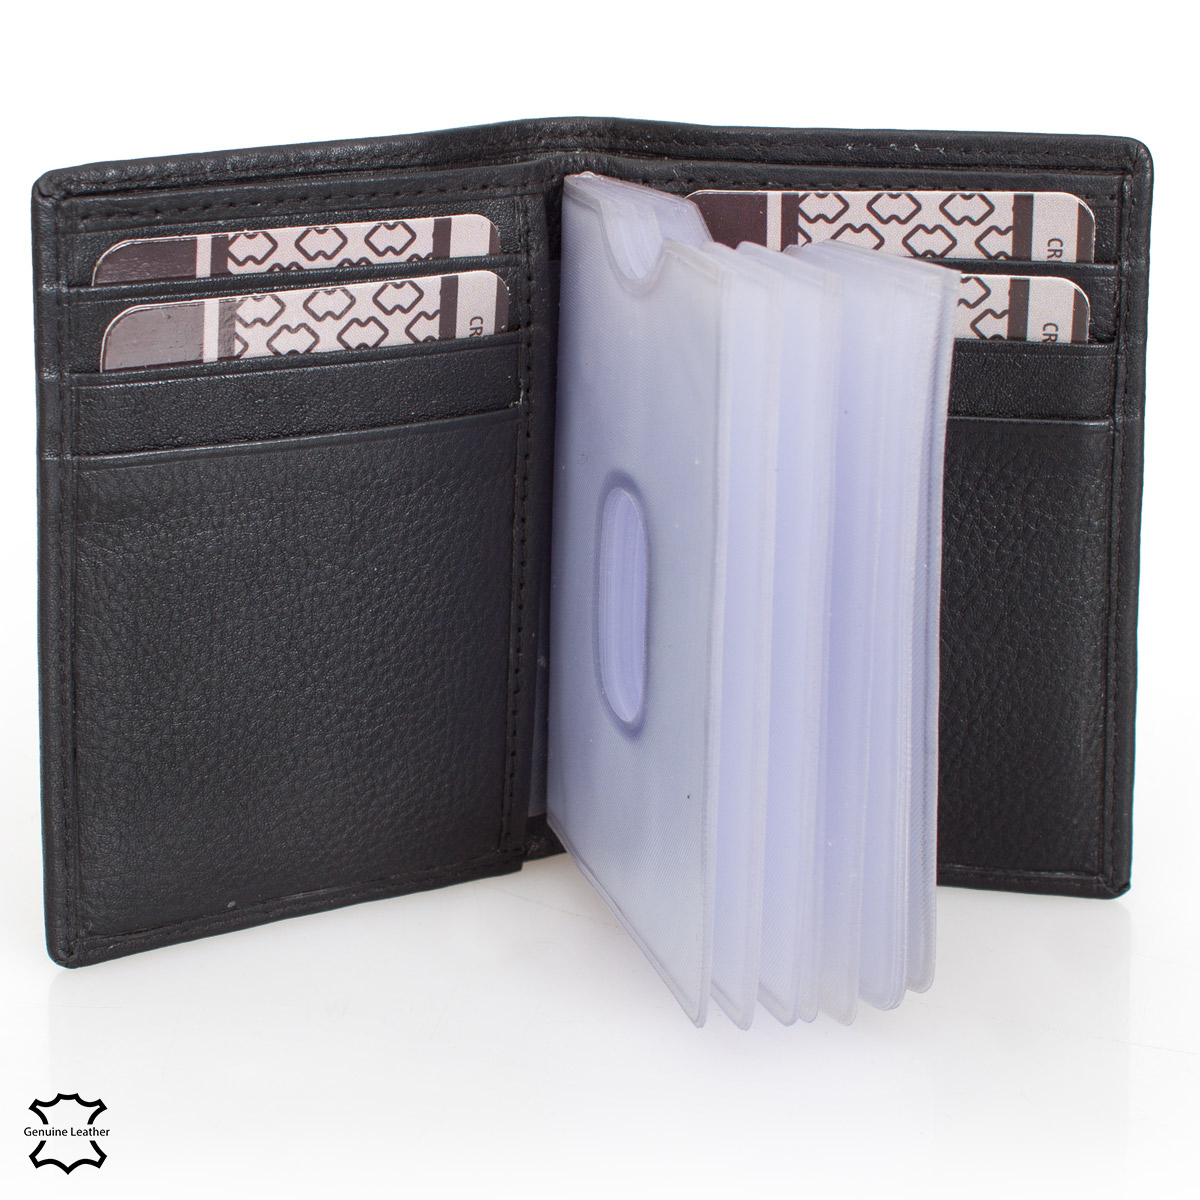 Delbag Card Holder Wallet BLACK – image 3